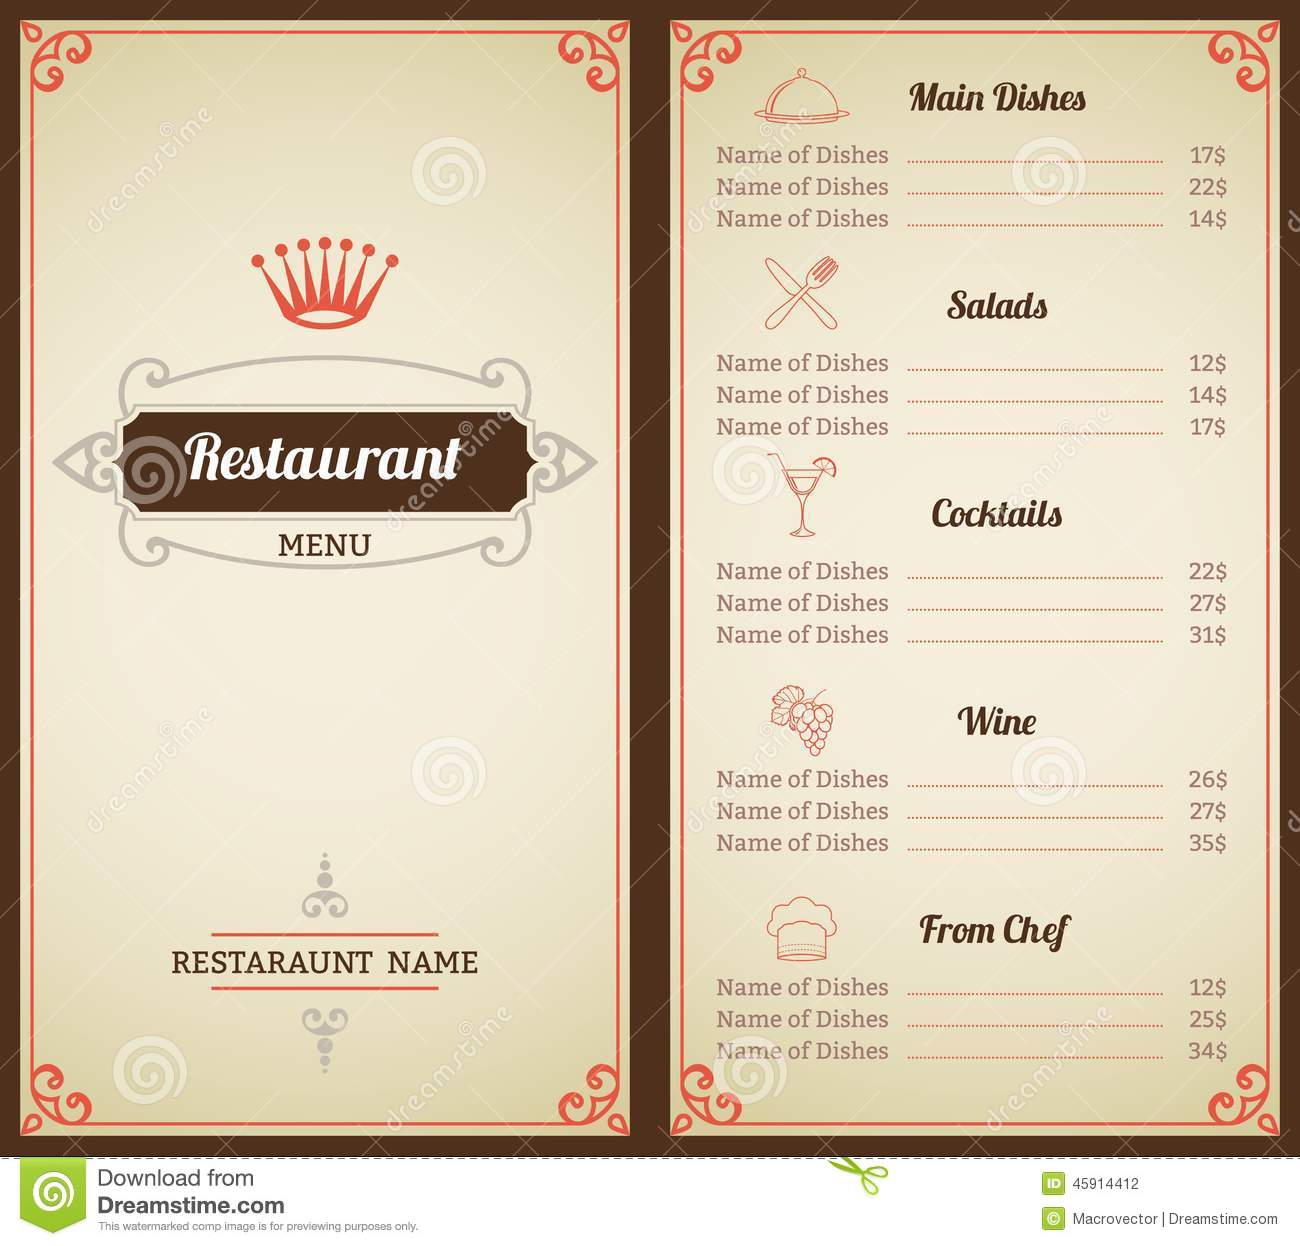 Restaurant menu template stock vector. Illustration of ...